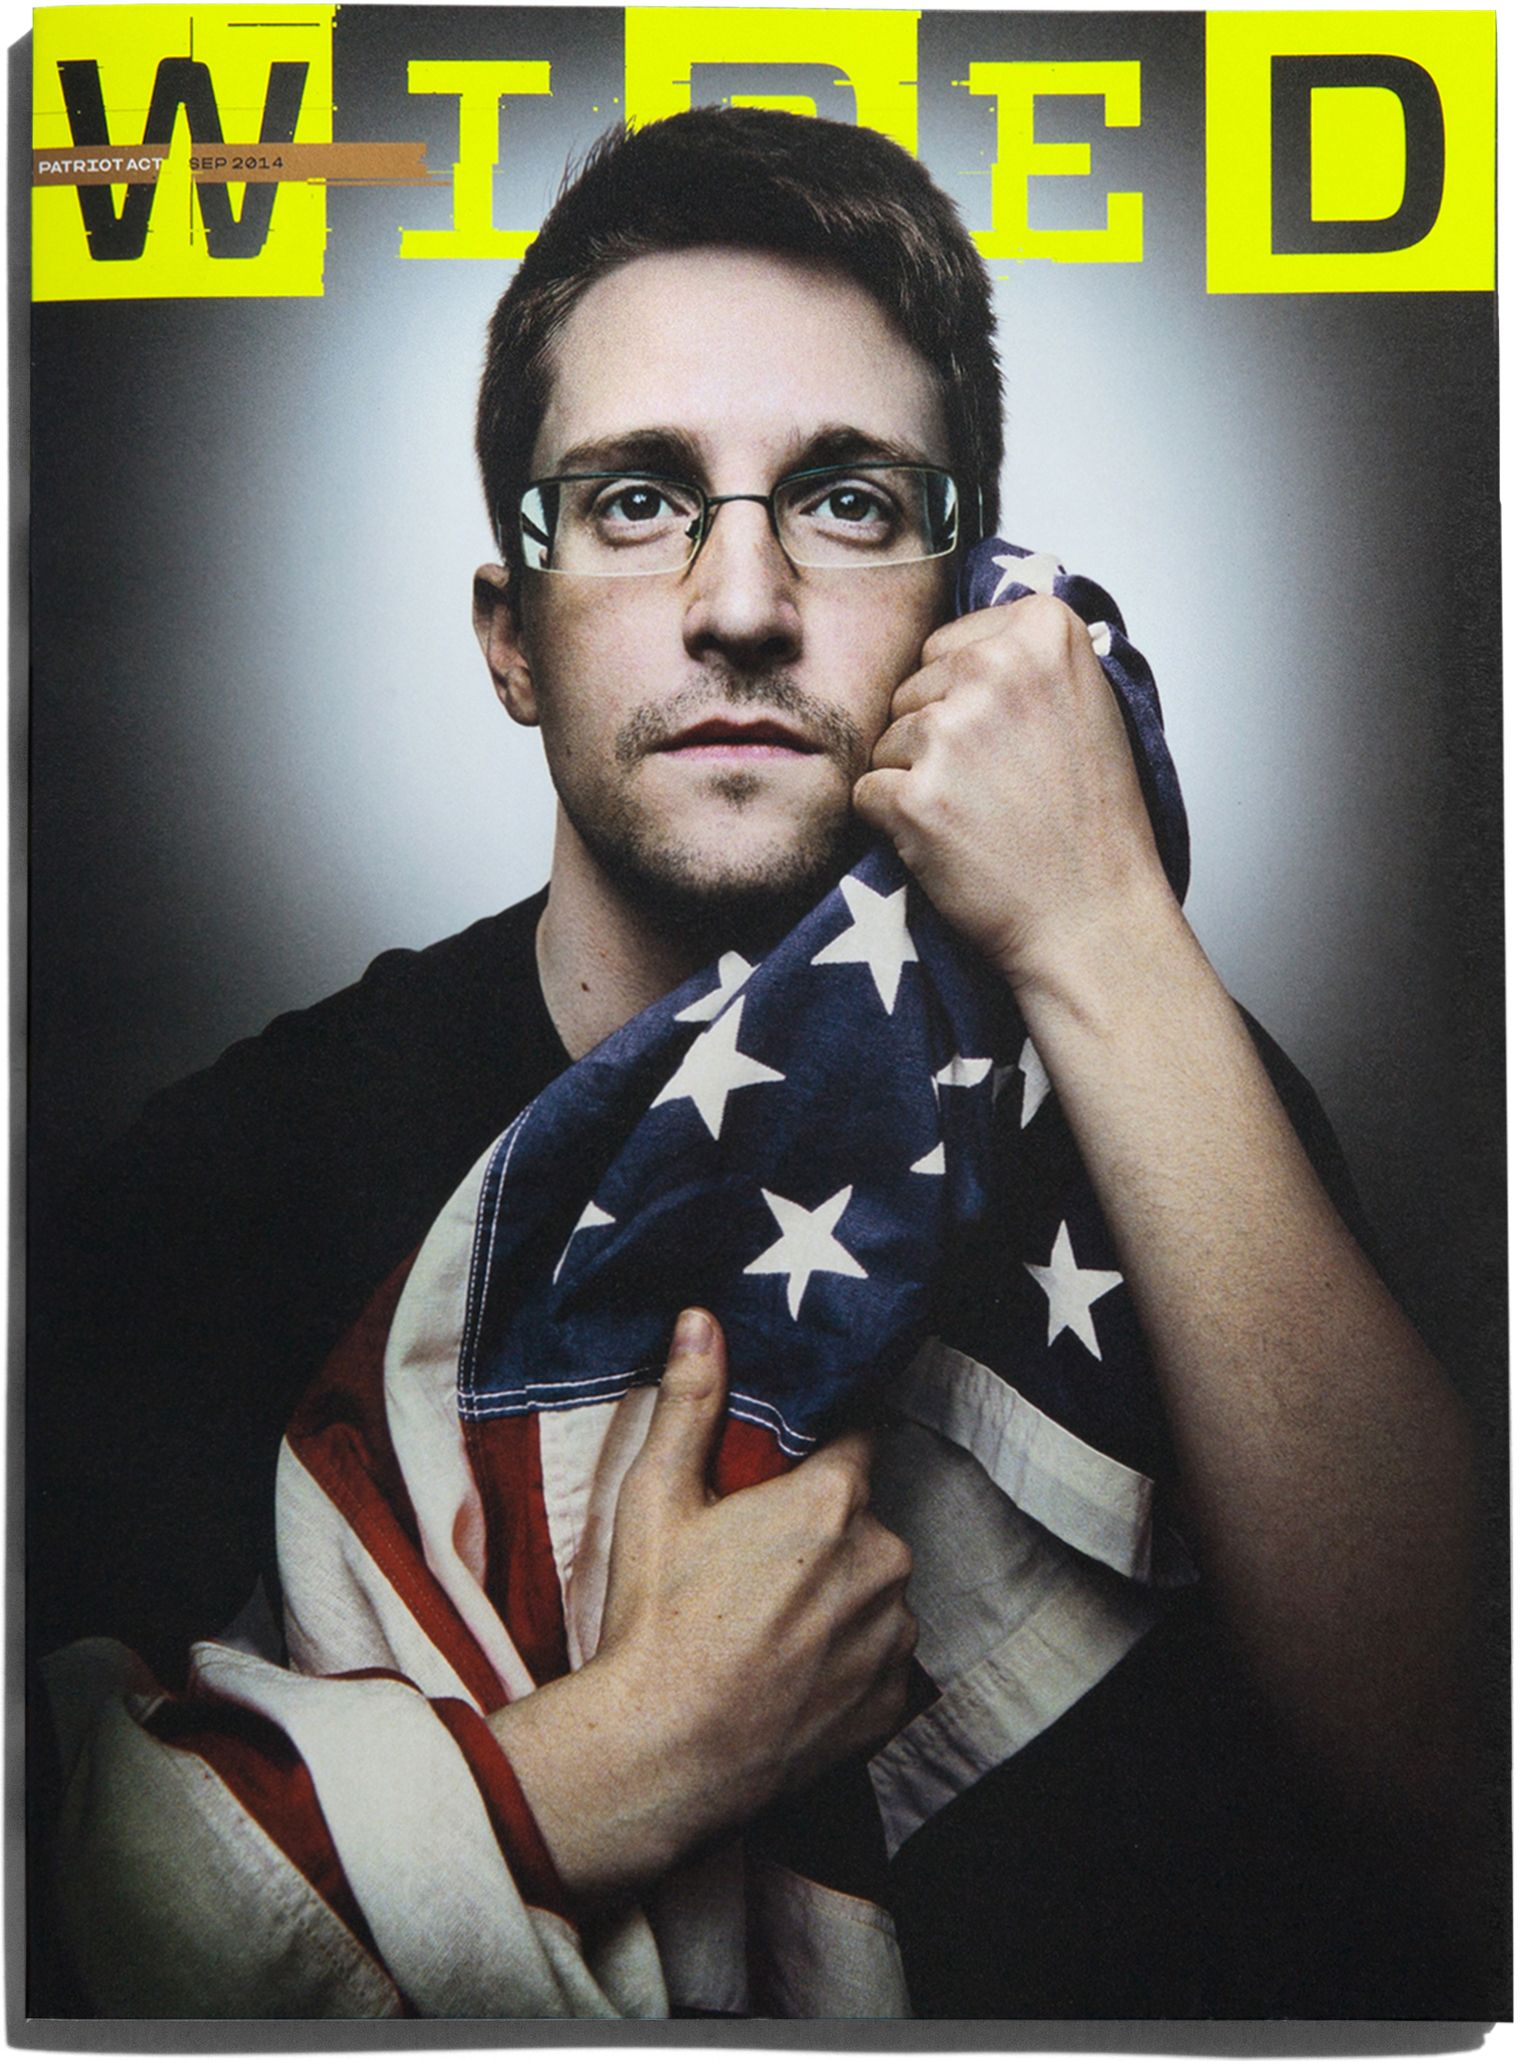 Wired x Ed Snowden | Magazine covers, Magazines and Magazine layouts